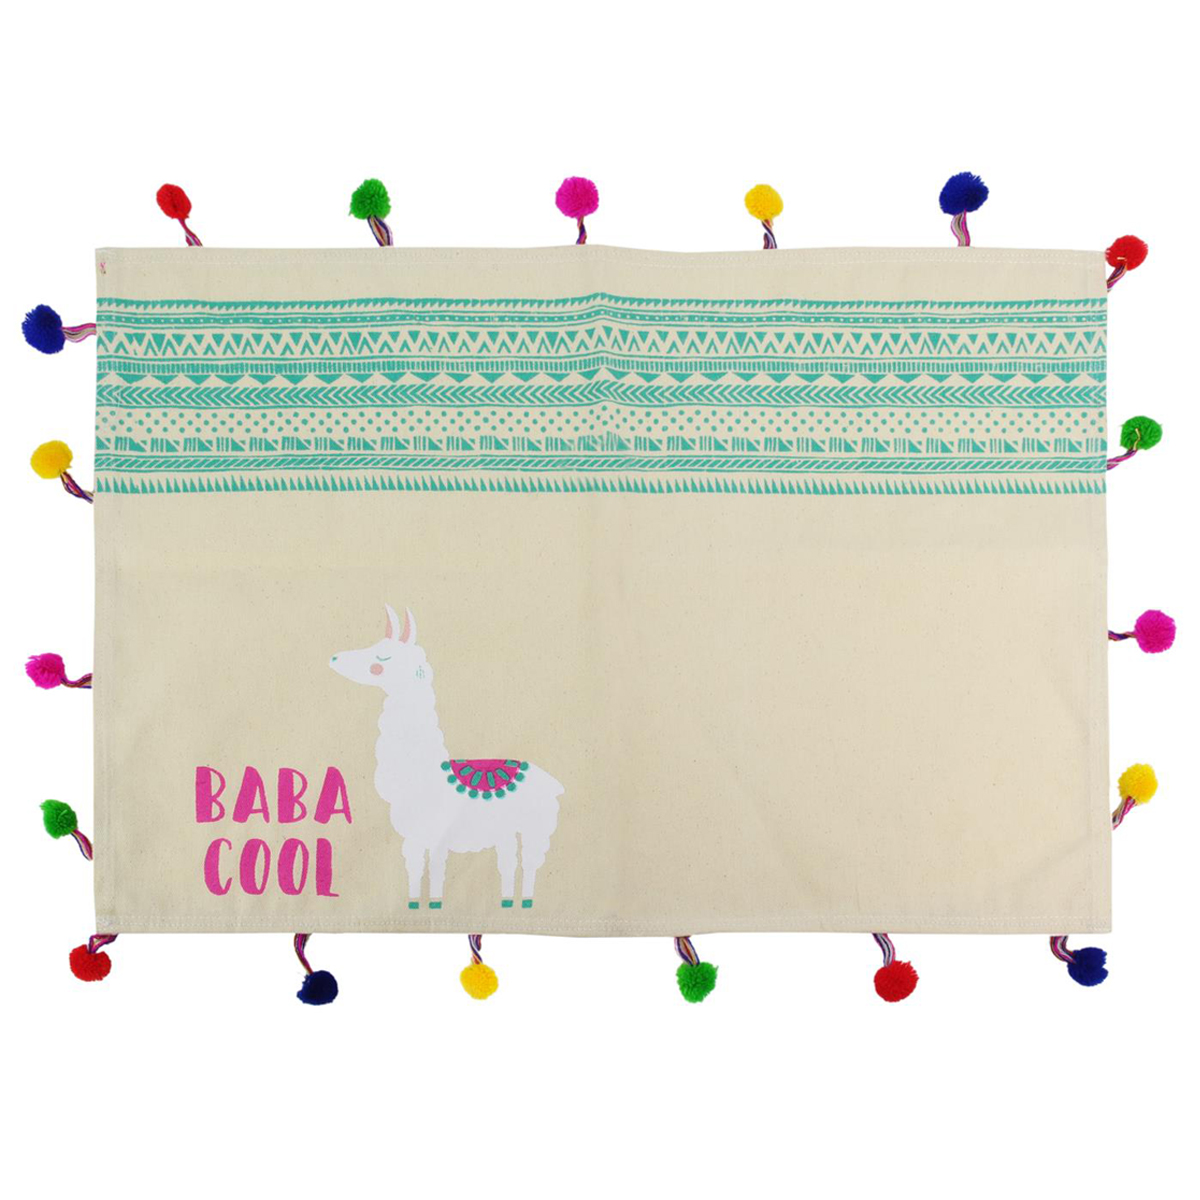 Set de table coton \'Lama Mania\' vert beige (baba cool) - 33x48 cm - [Q4781]